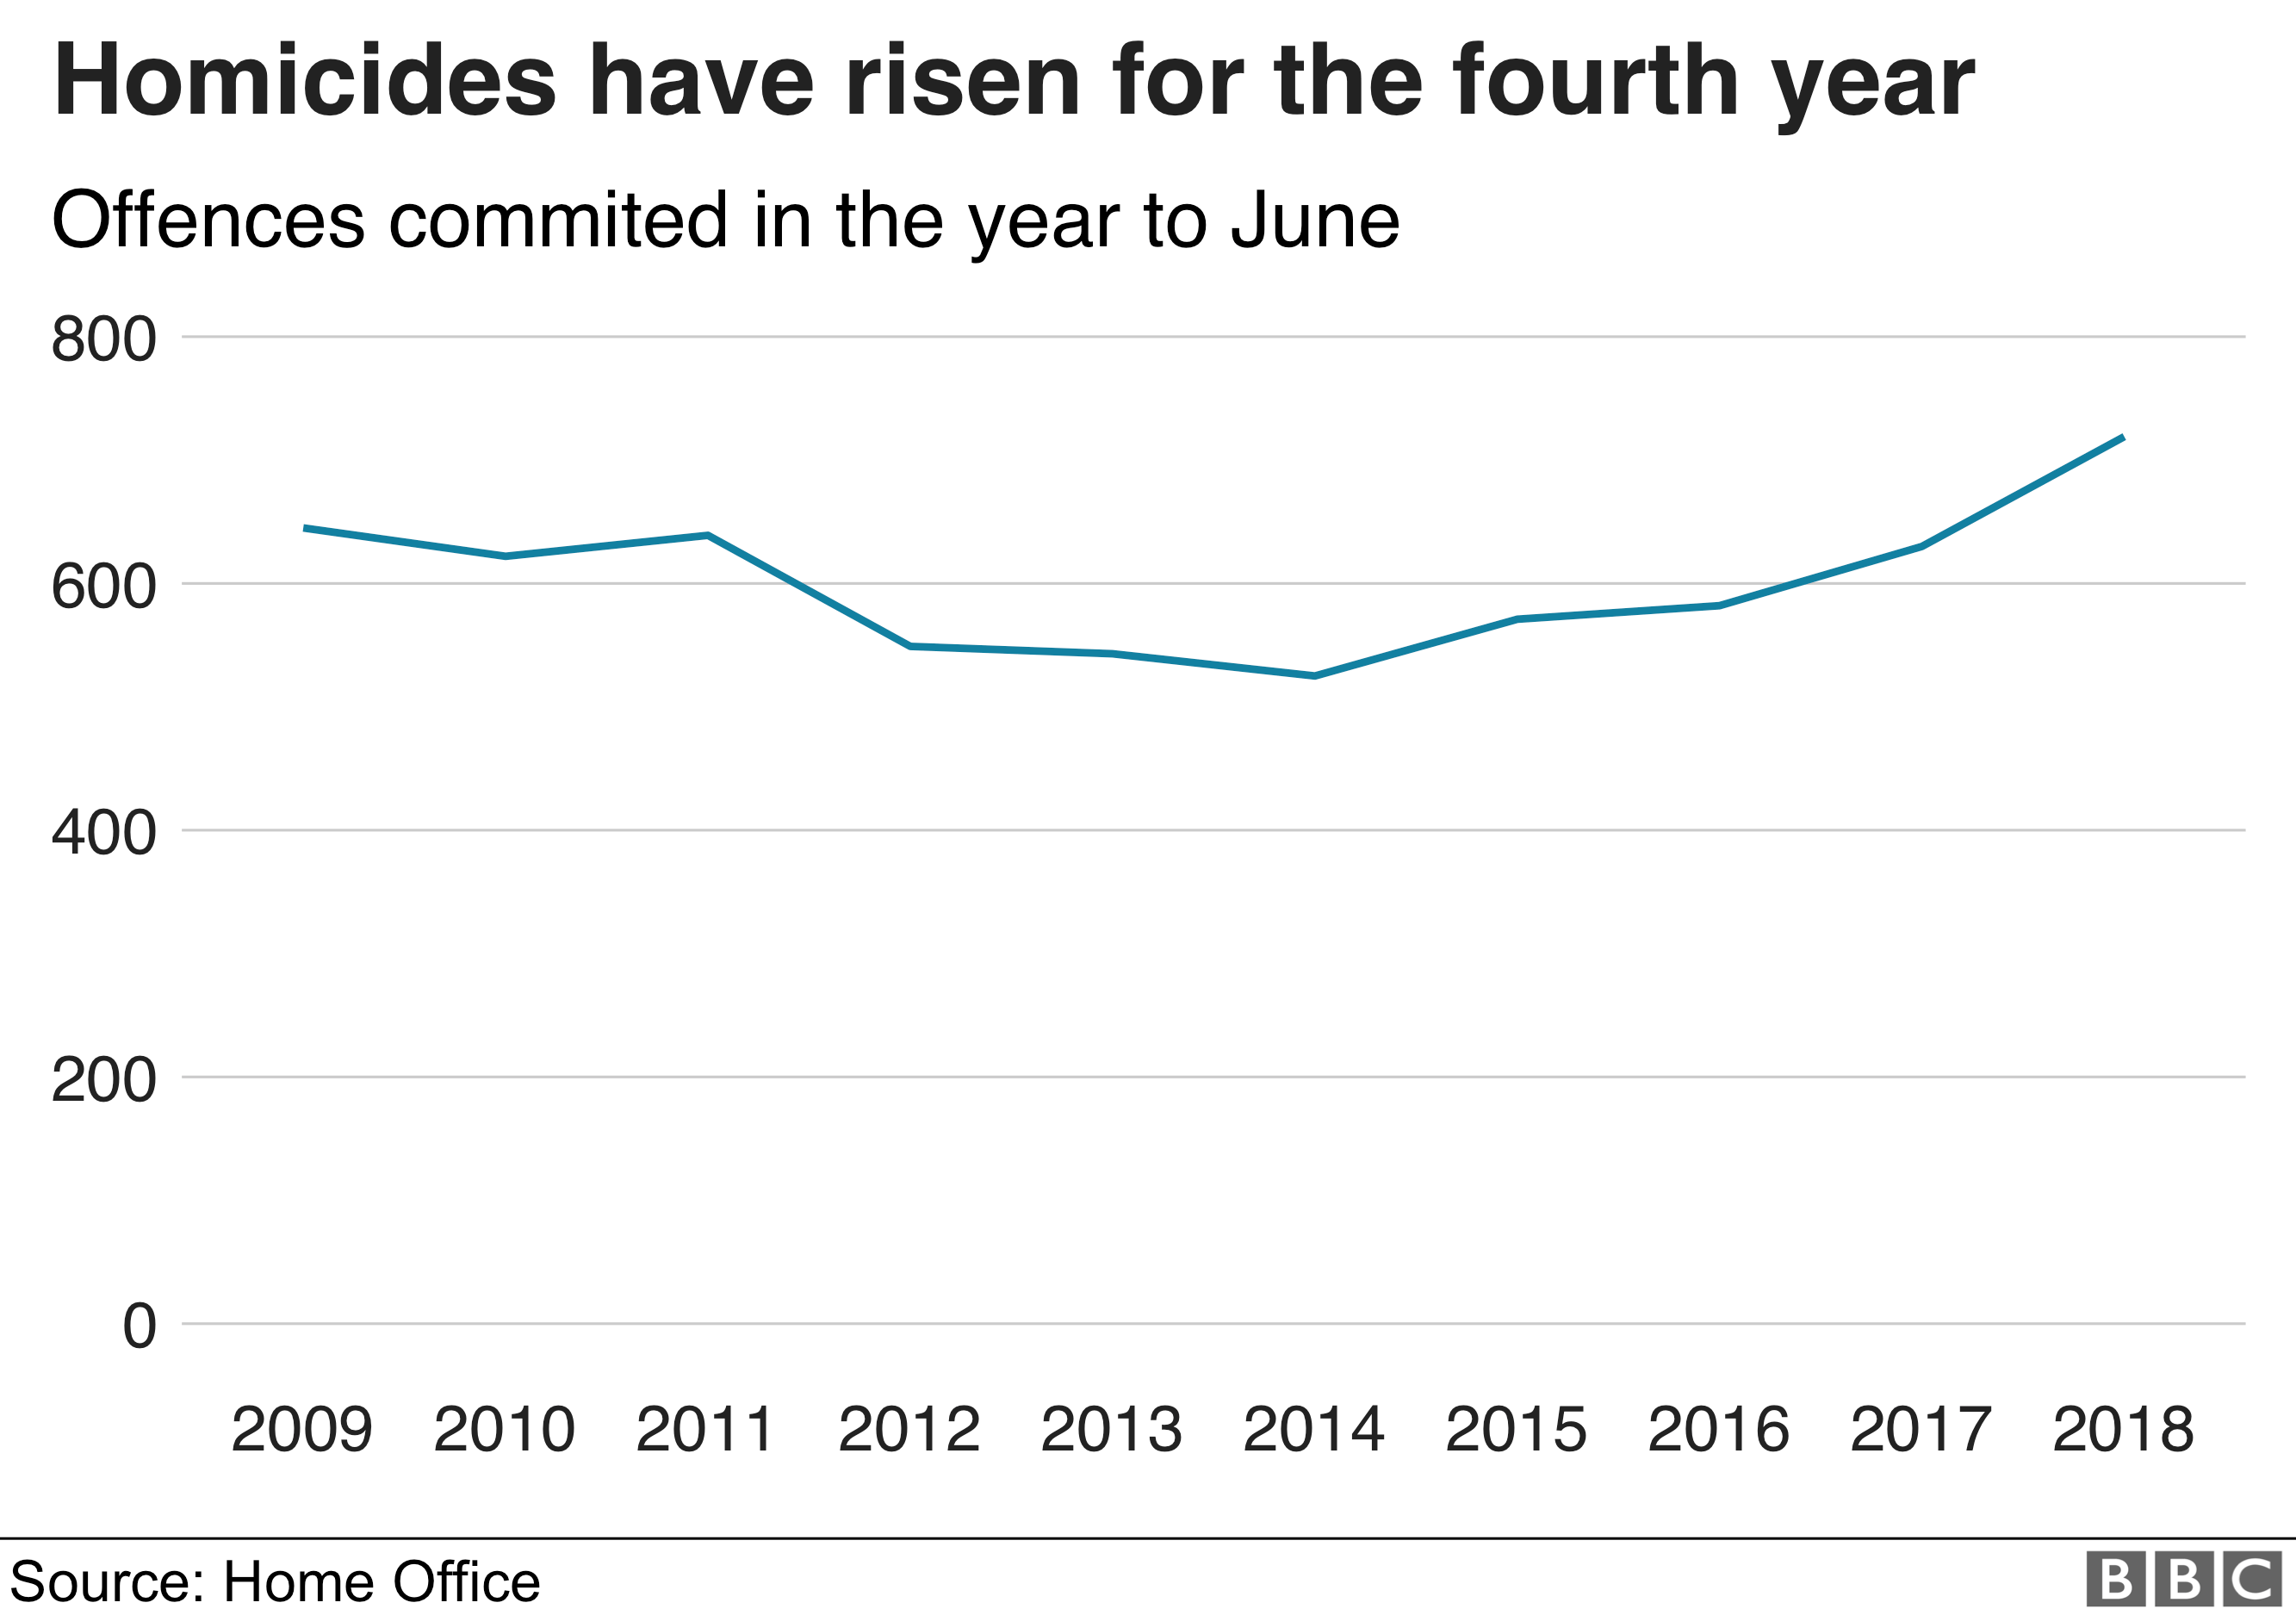 Homicides have risen for the fourth year.